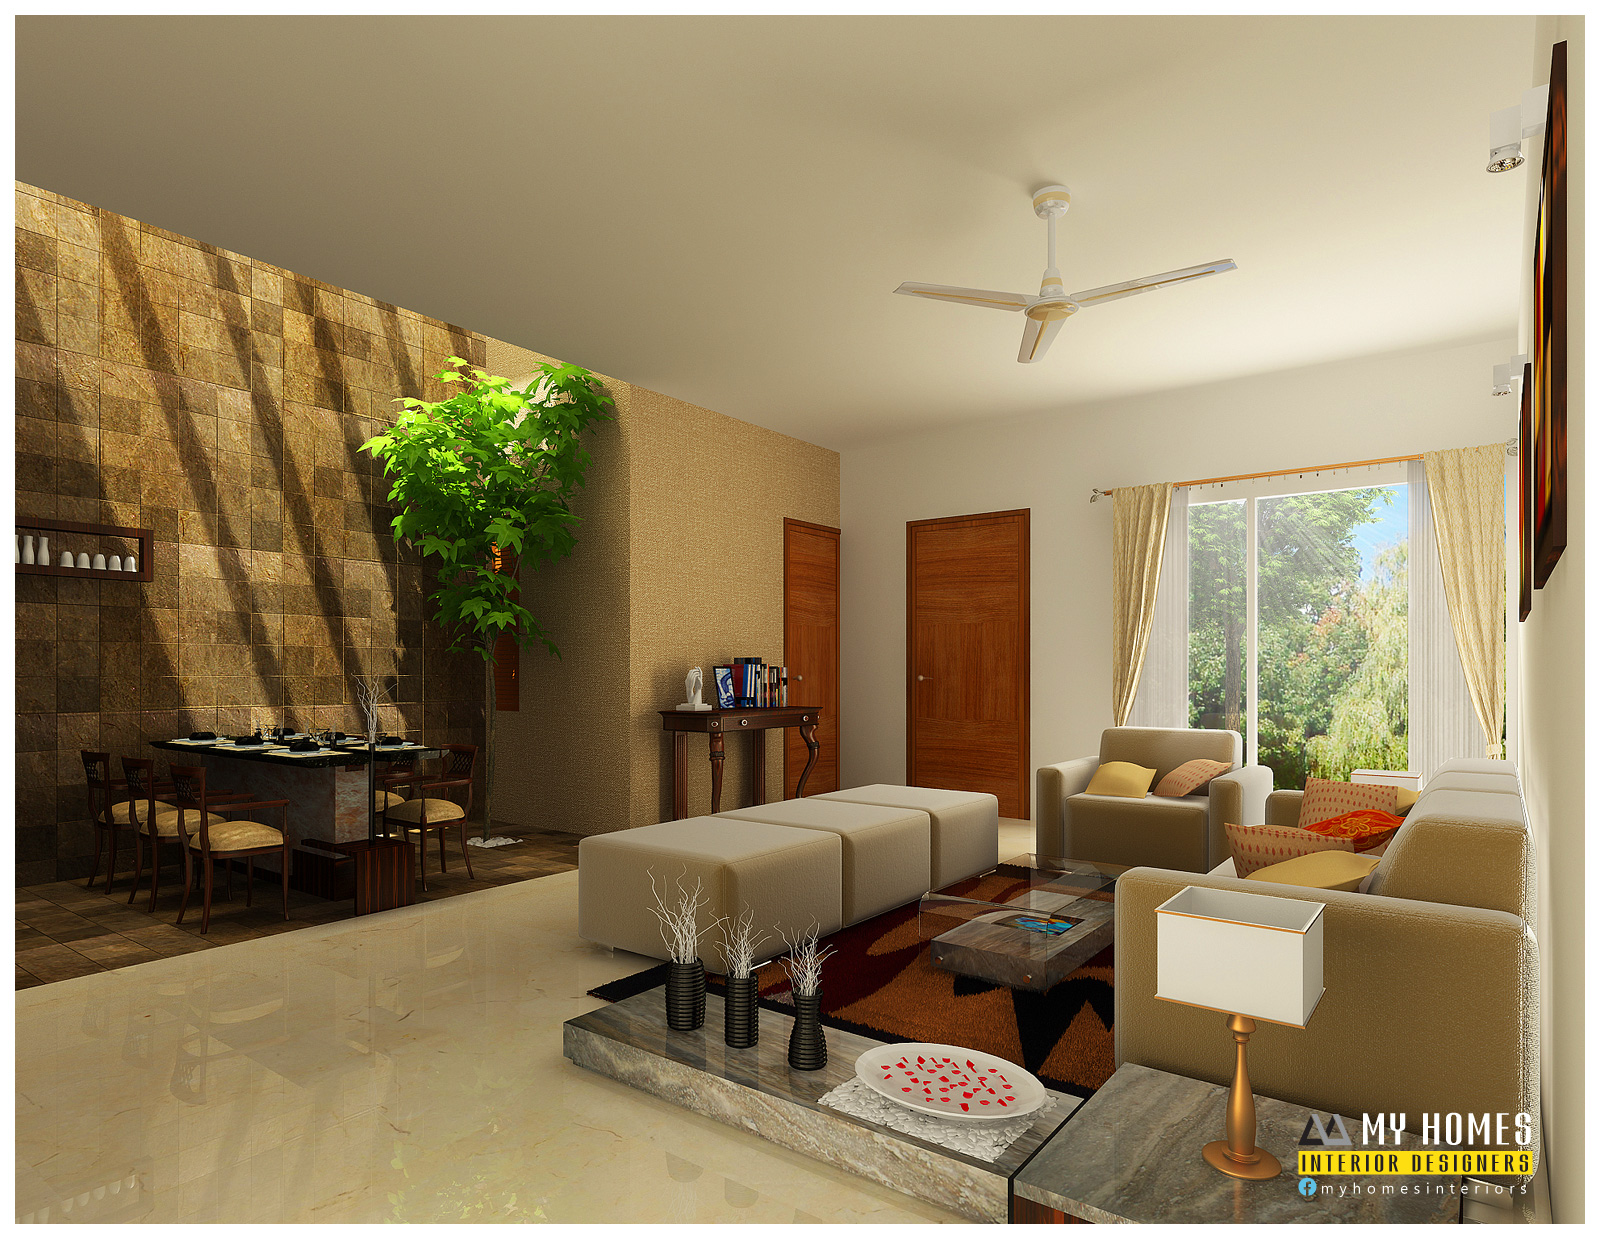 Kerala interior design ideas from designing company thrissur - Low cost living room design ideas ...